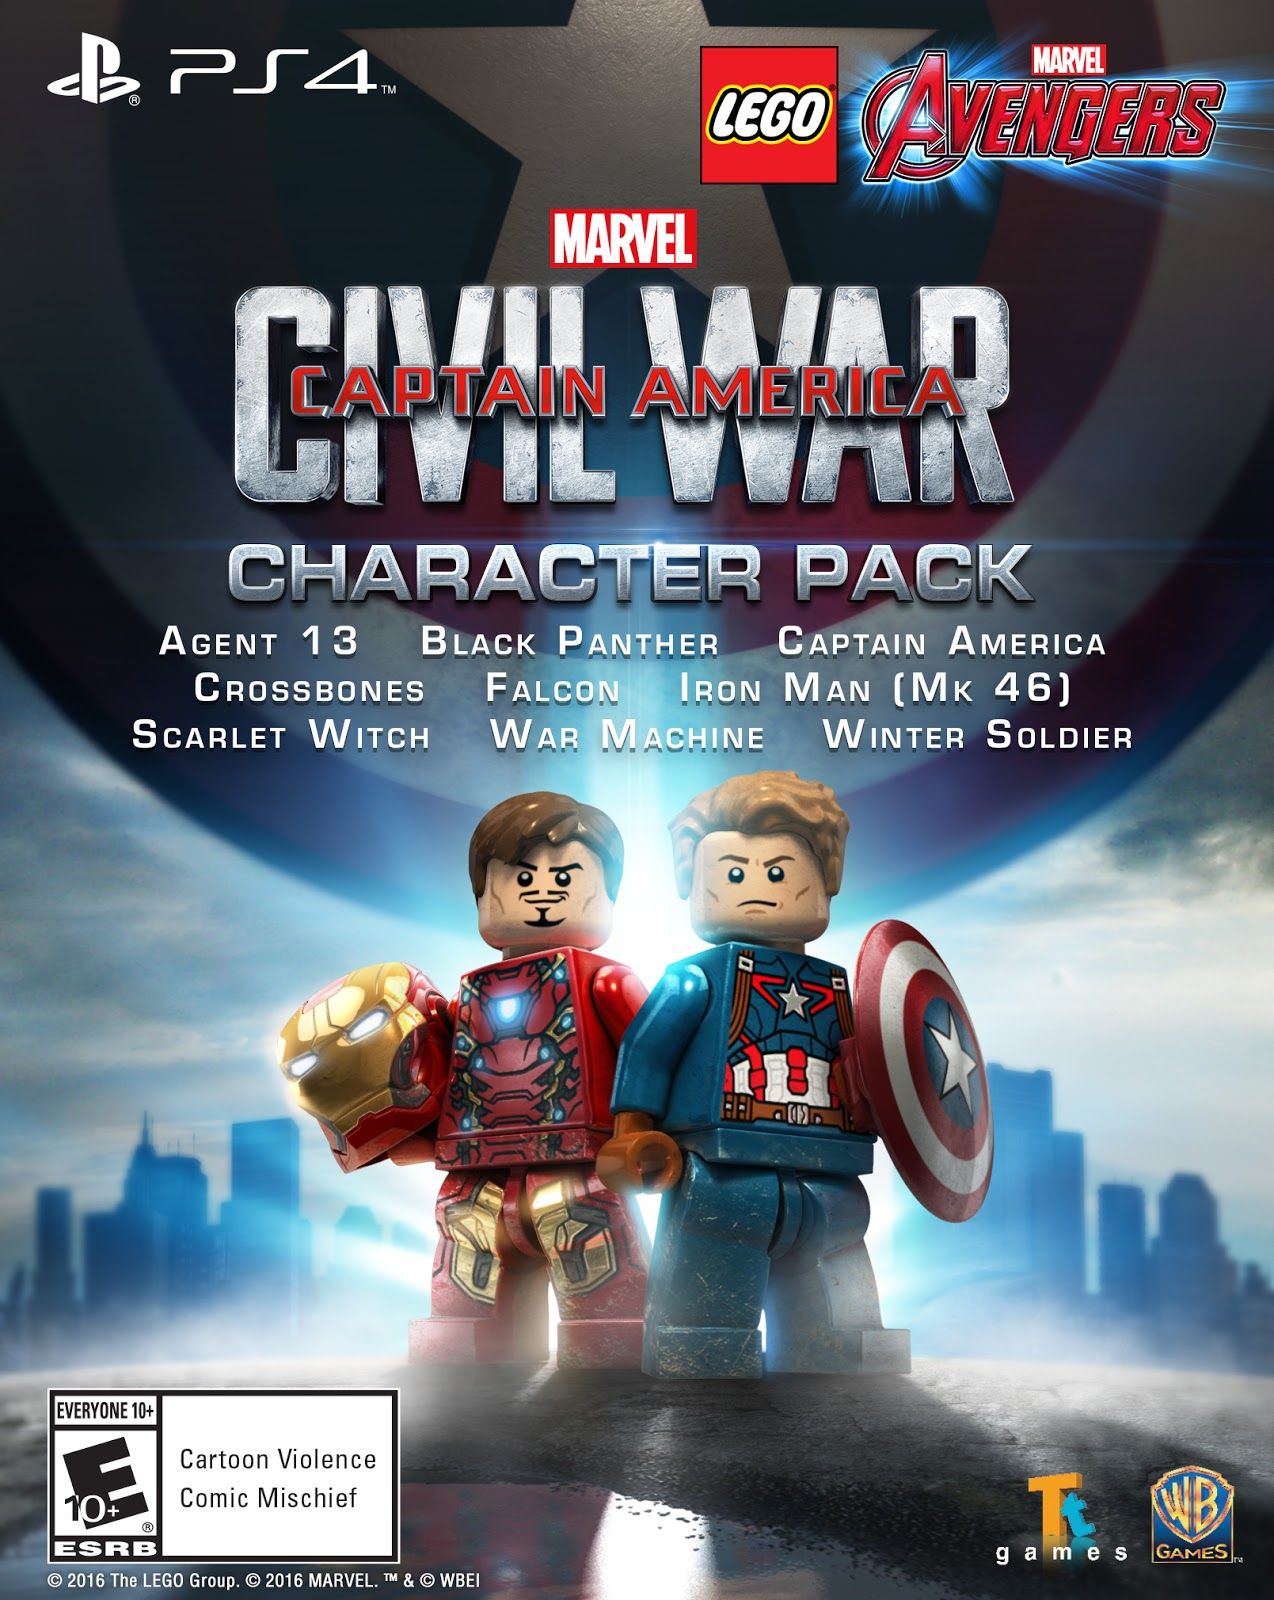 Super Heroes Once United Now Find Themselves Divided Marvels Captain America Civil War Character Pack Expands The Games Already Impressive Roster Of